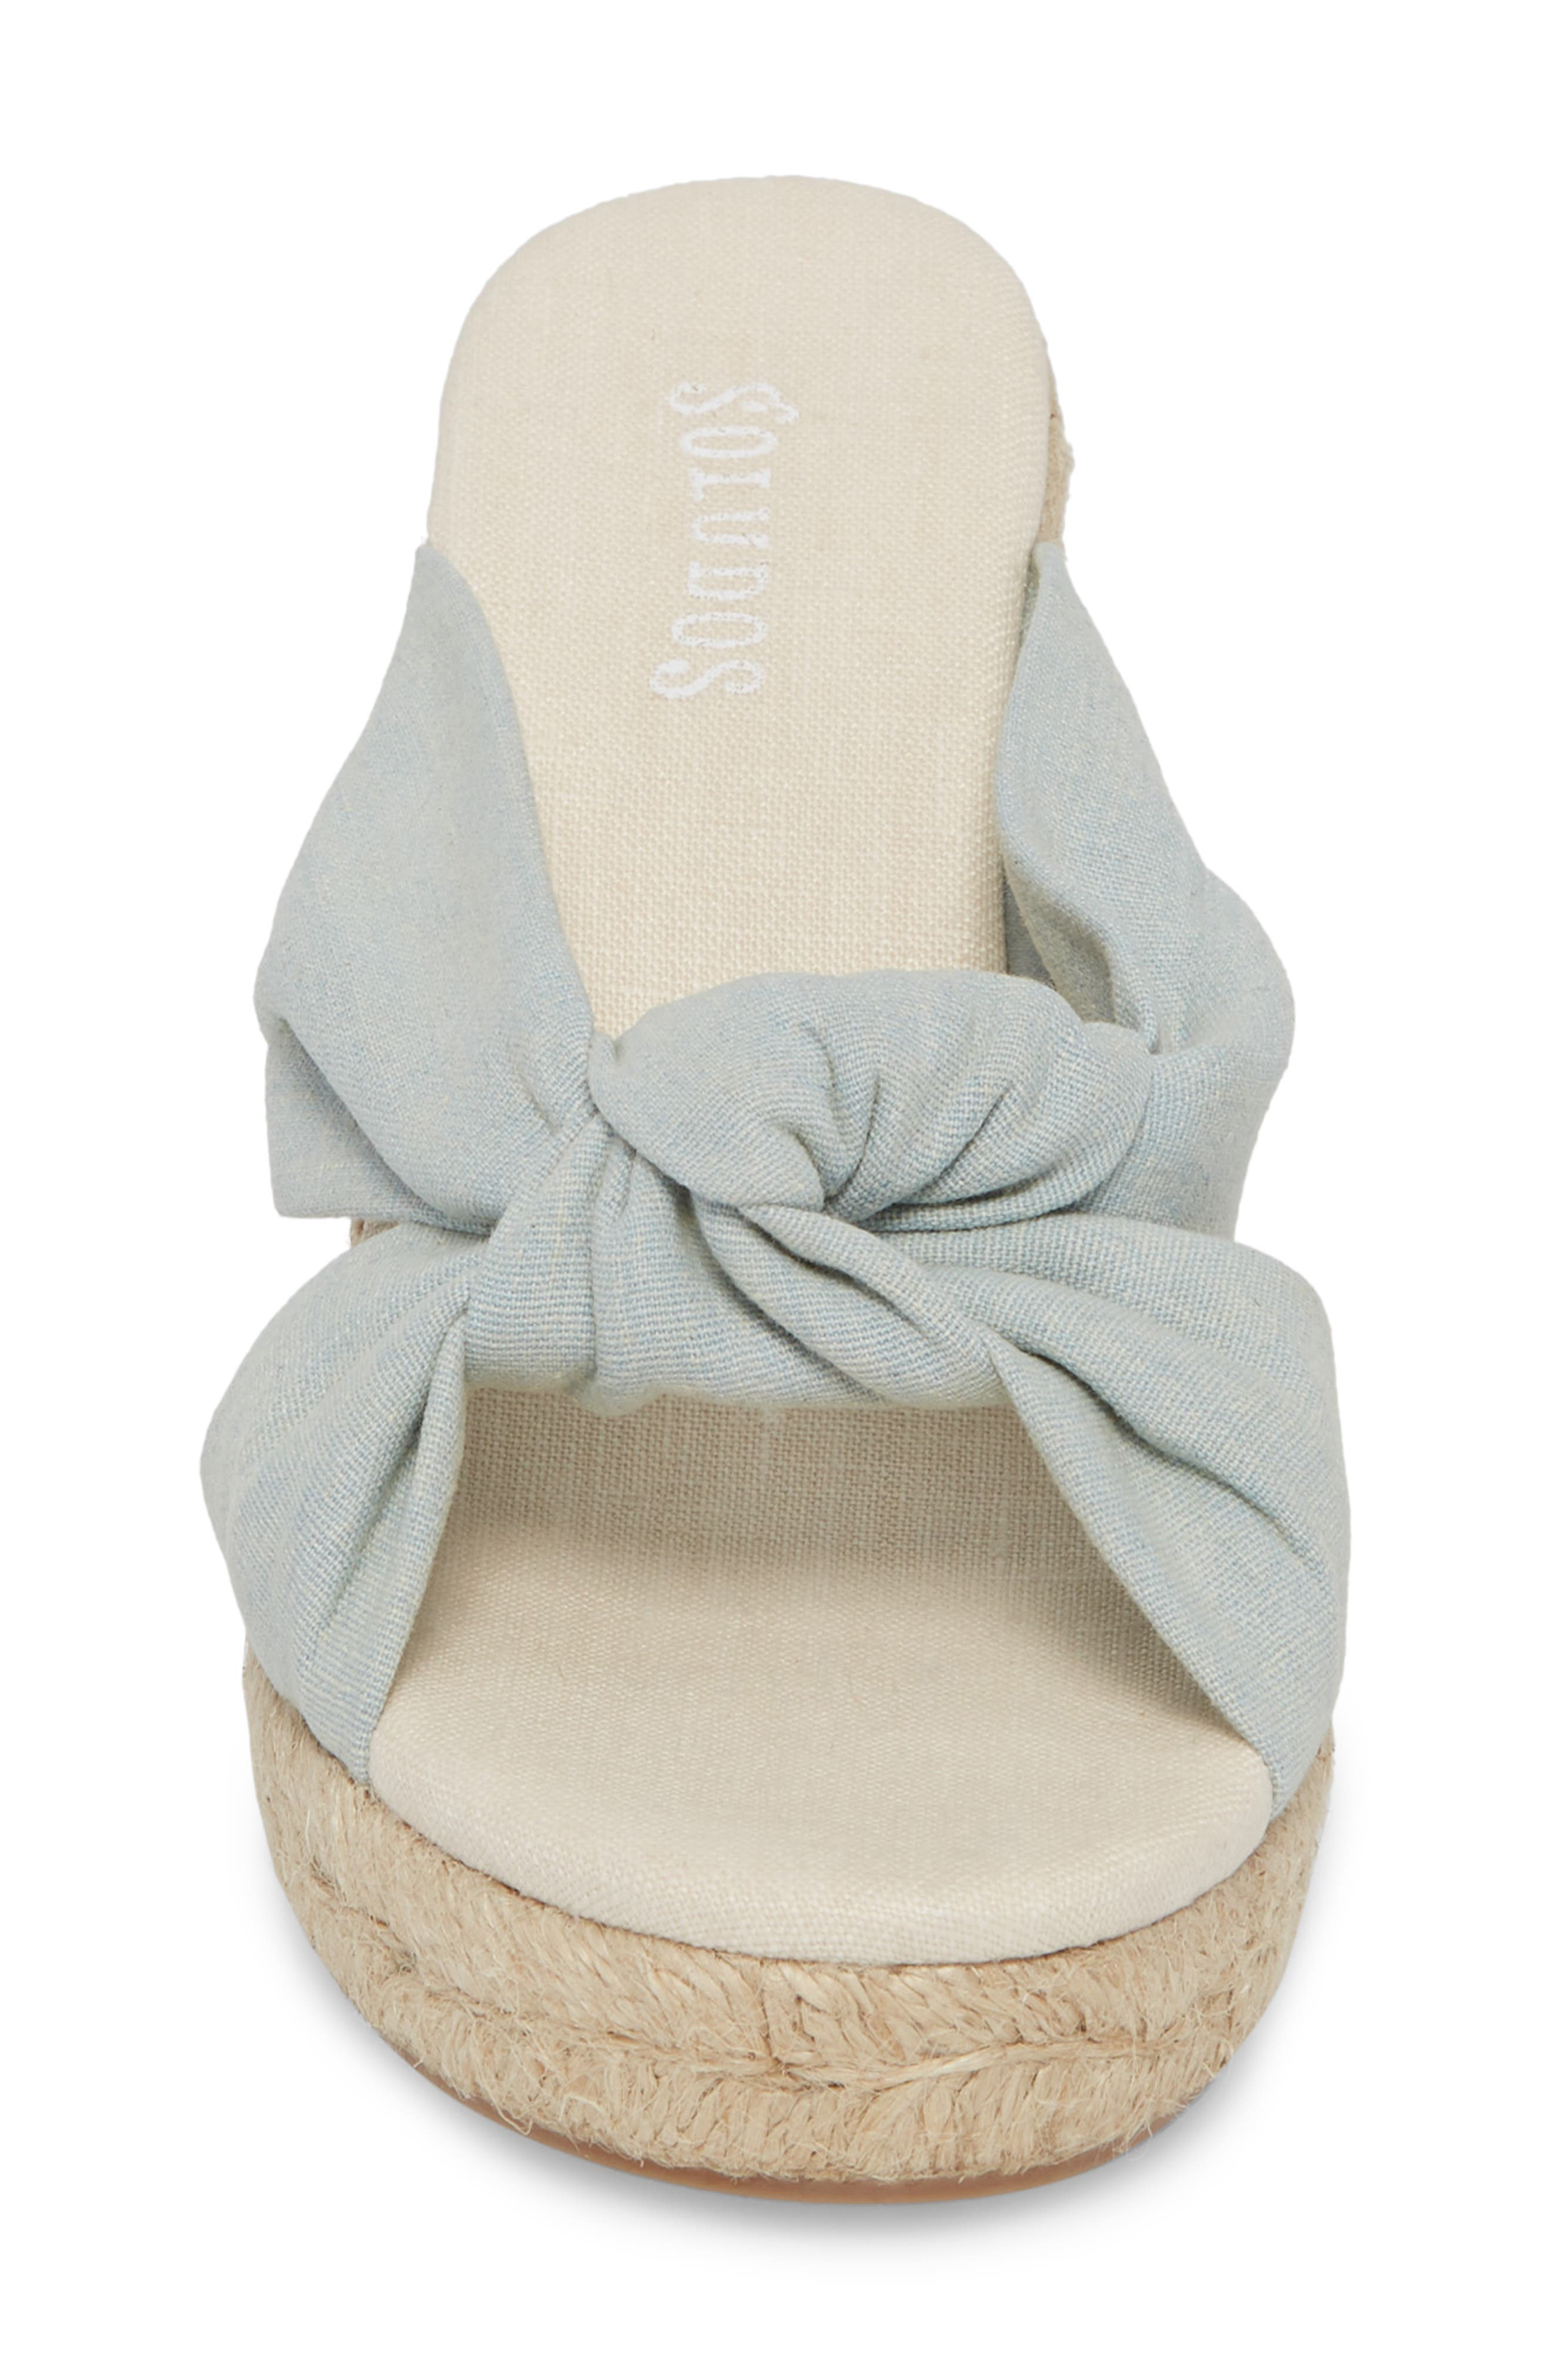 Knotted Espadrille Wedge Sandal,                             Alternate thumbnail 4, color,                             420